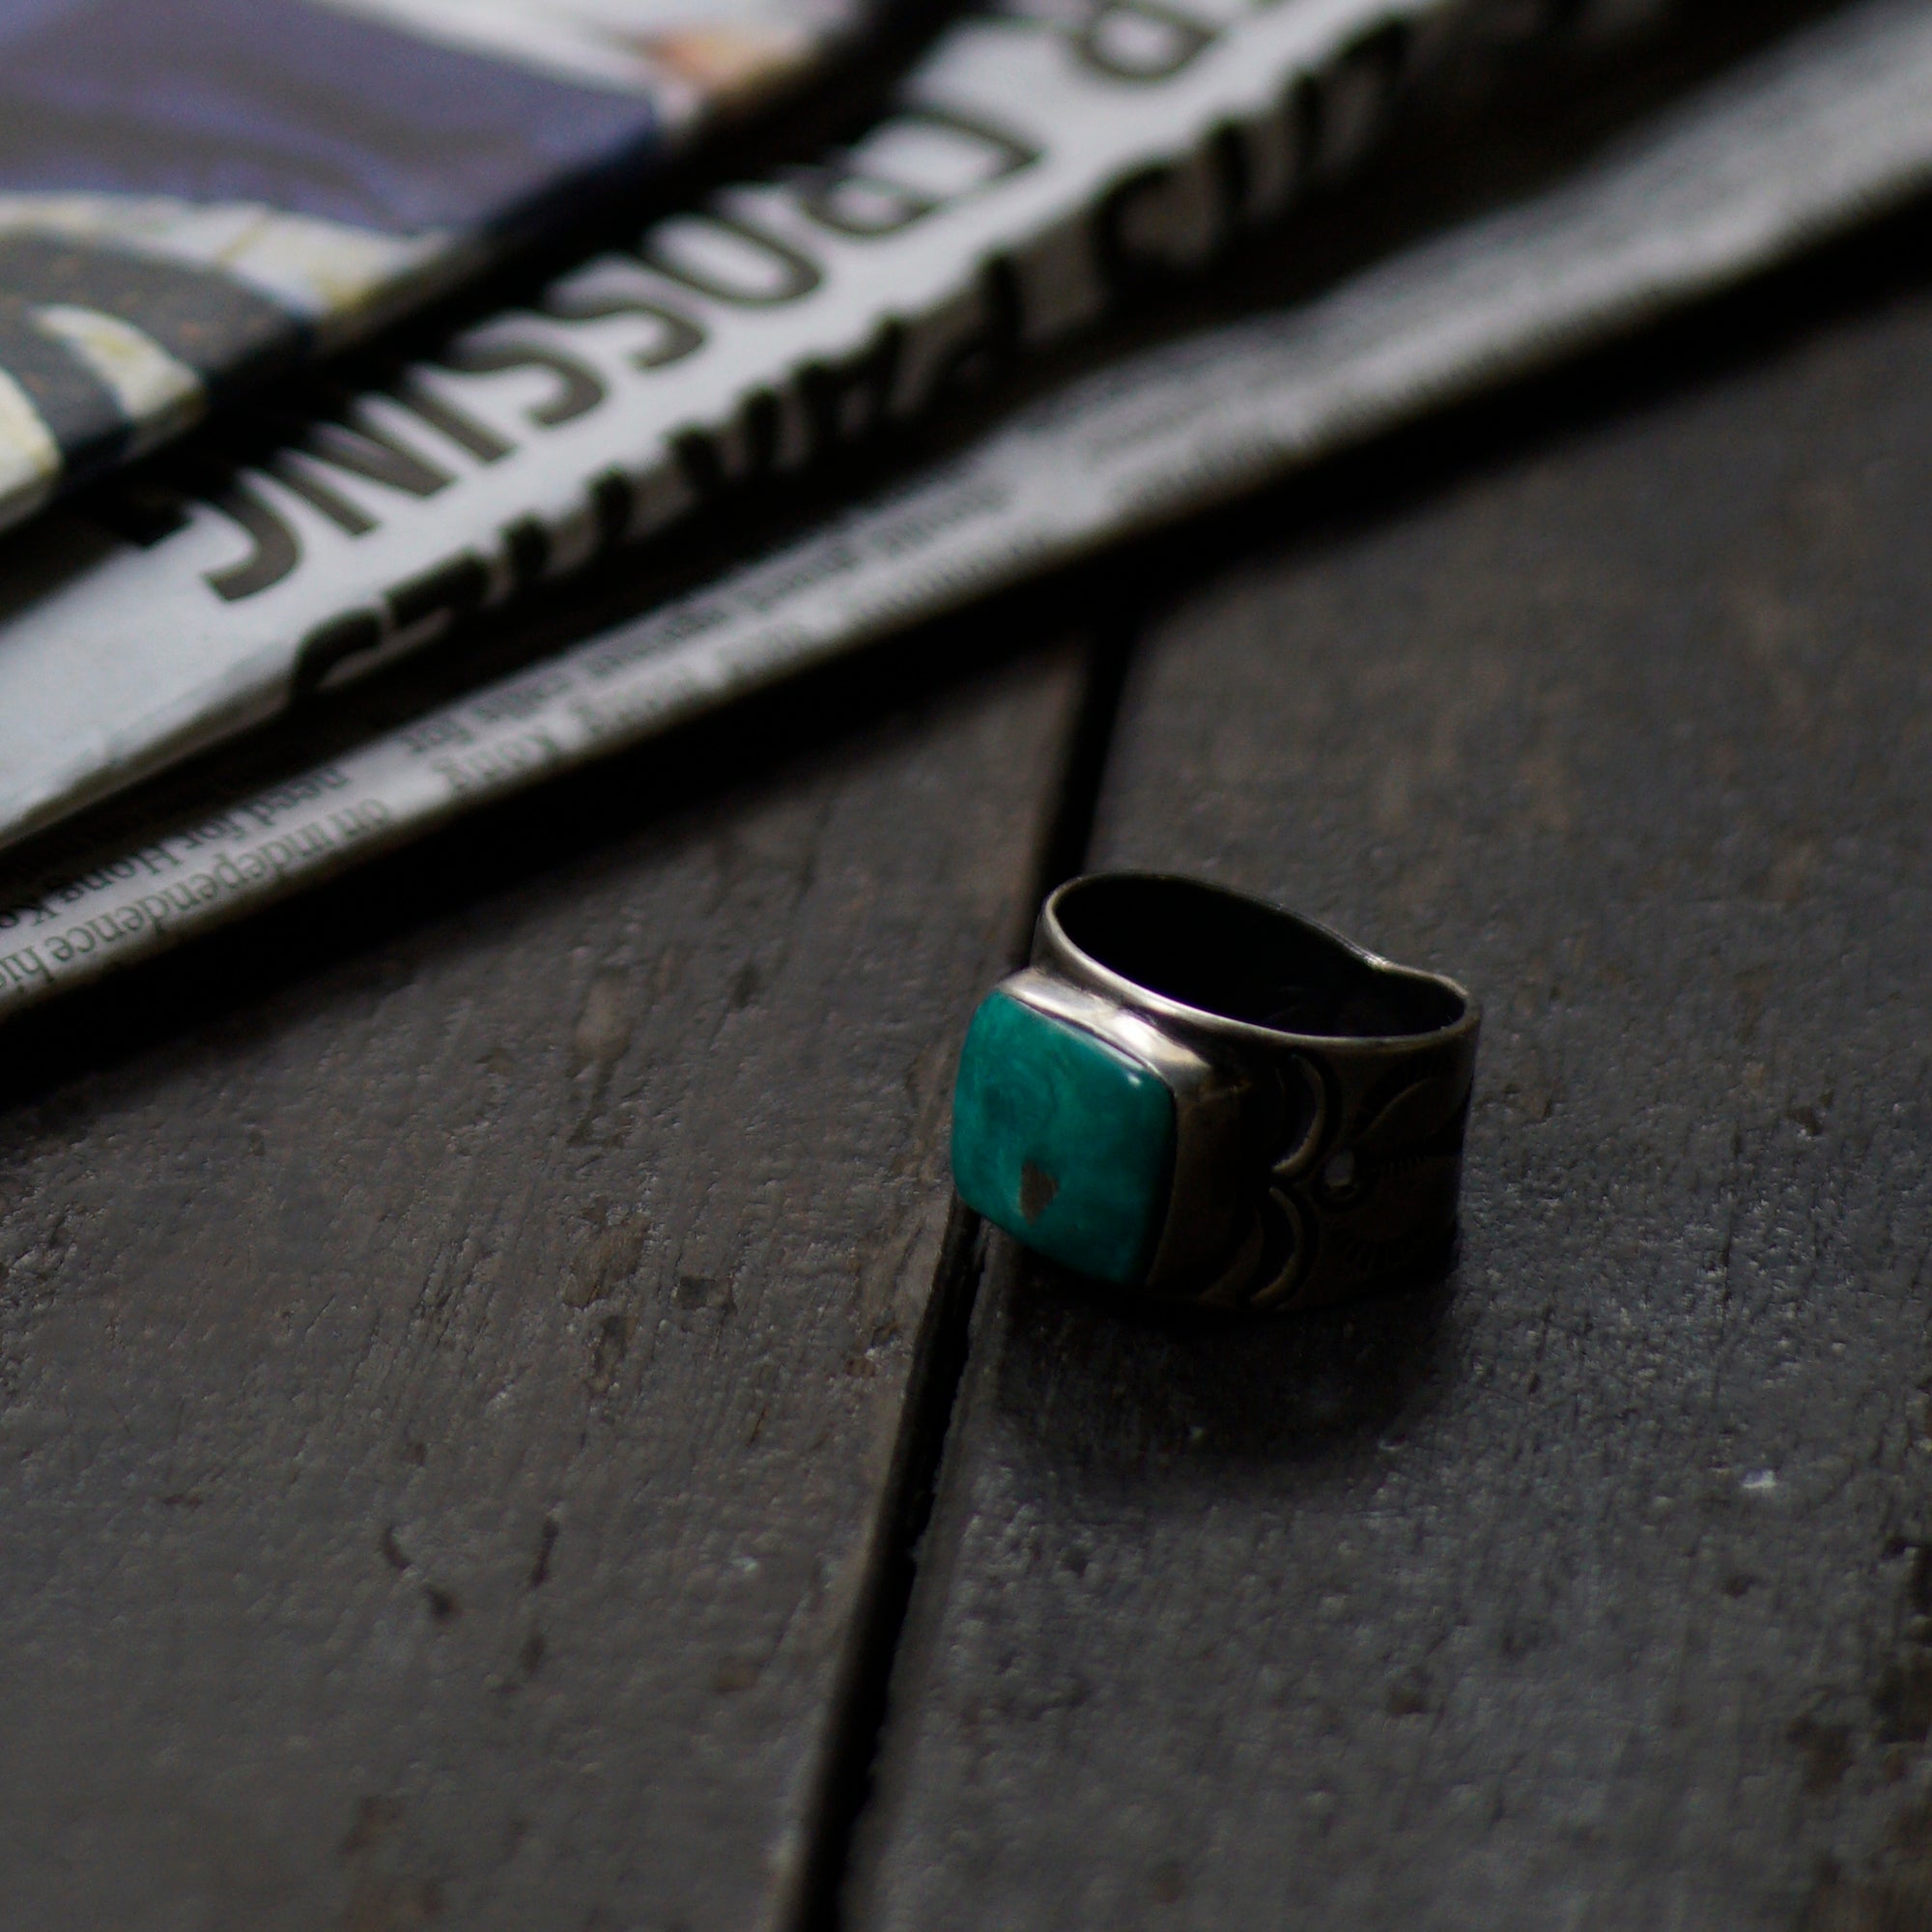 SPECIAL - Red Rabbit Ingot Silver Ring with Large Turquoise Stone (RRR02)